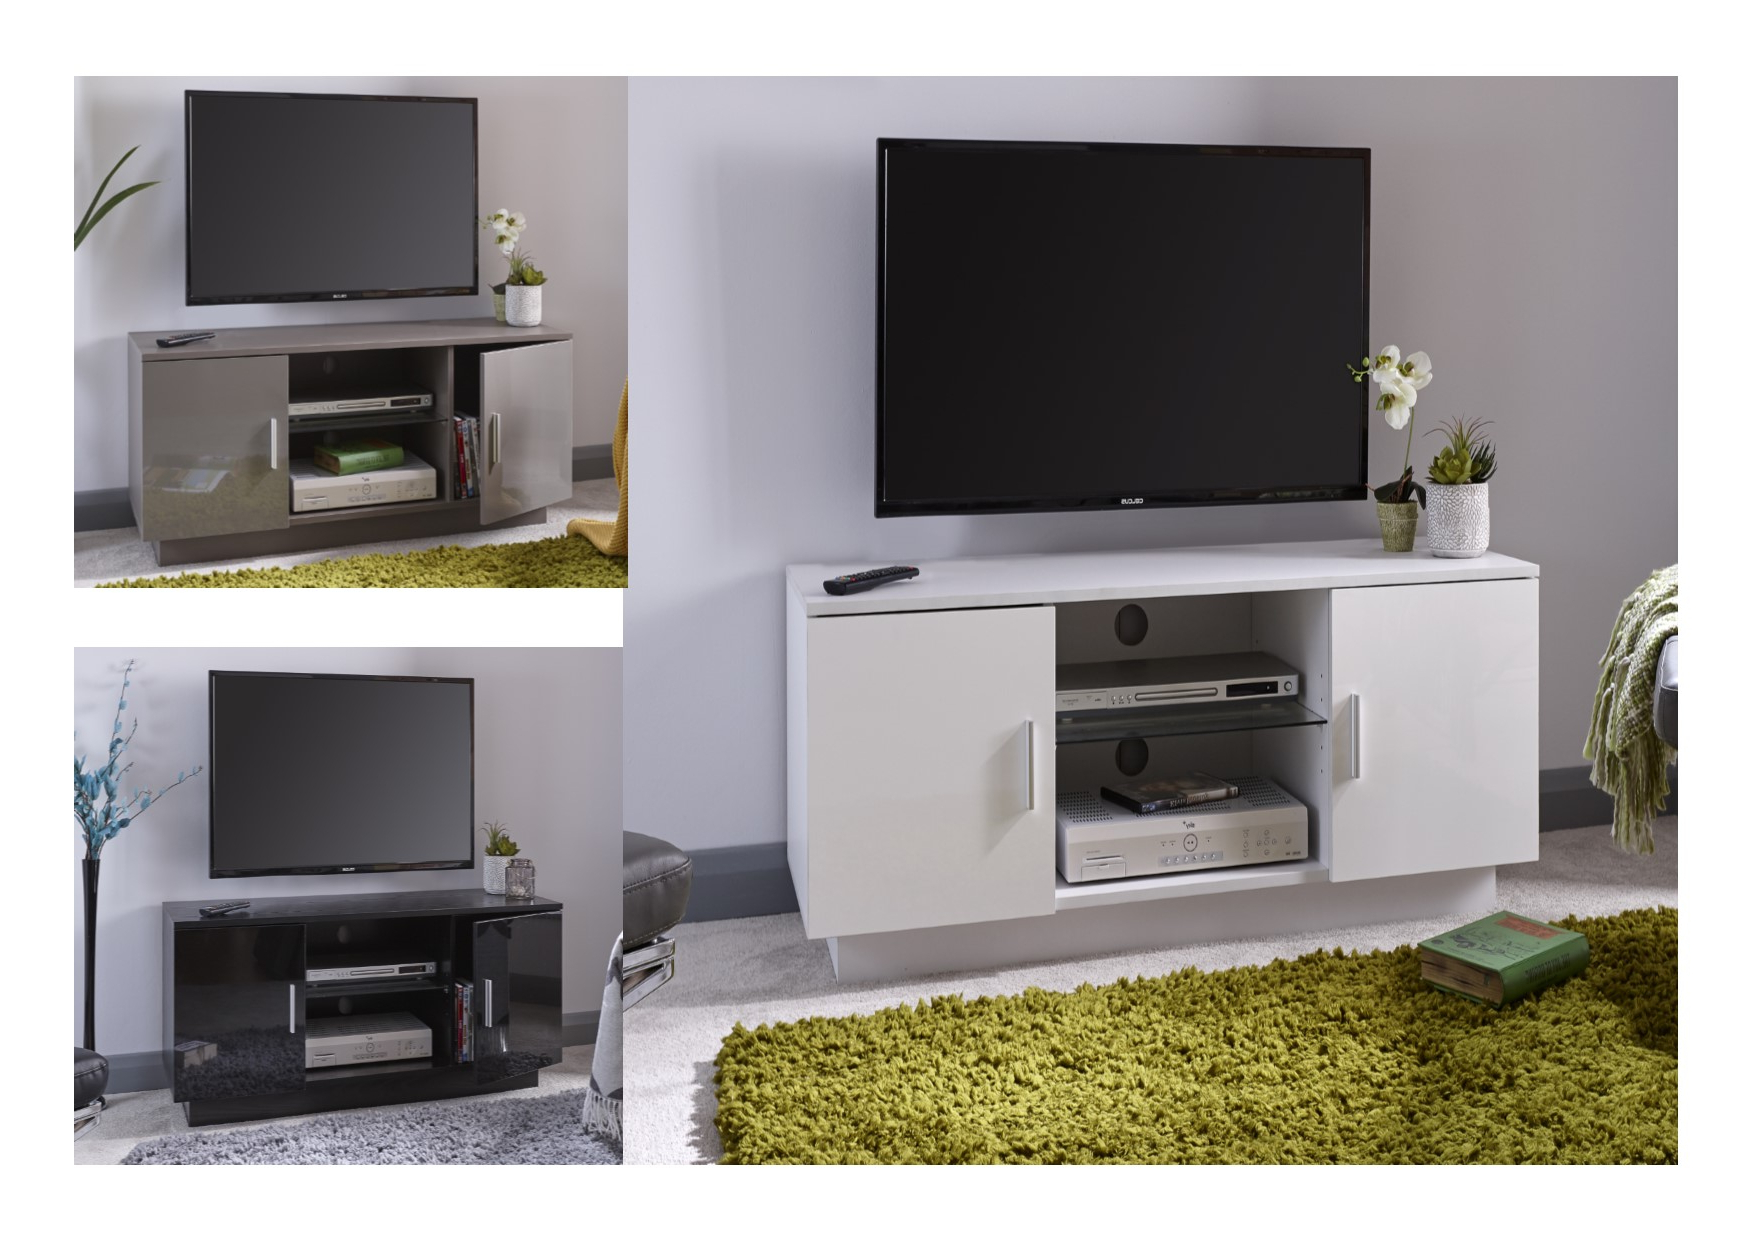 Lima High Gloss Tv Unit – Black, Grey Or White – Tv Cabinet With Throughout Fashionable White High Gloss Tv Unit (View 7 of 20)